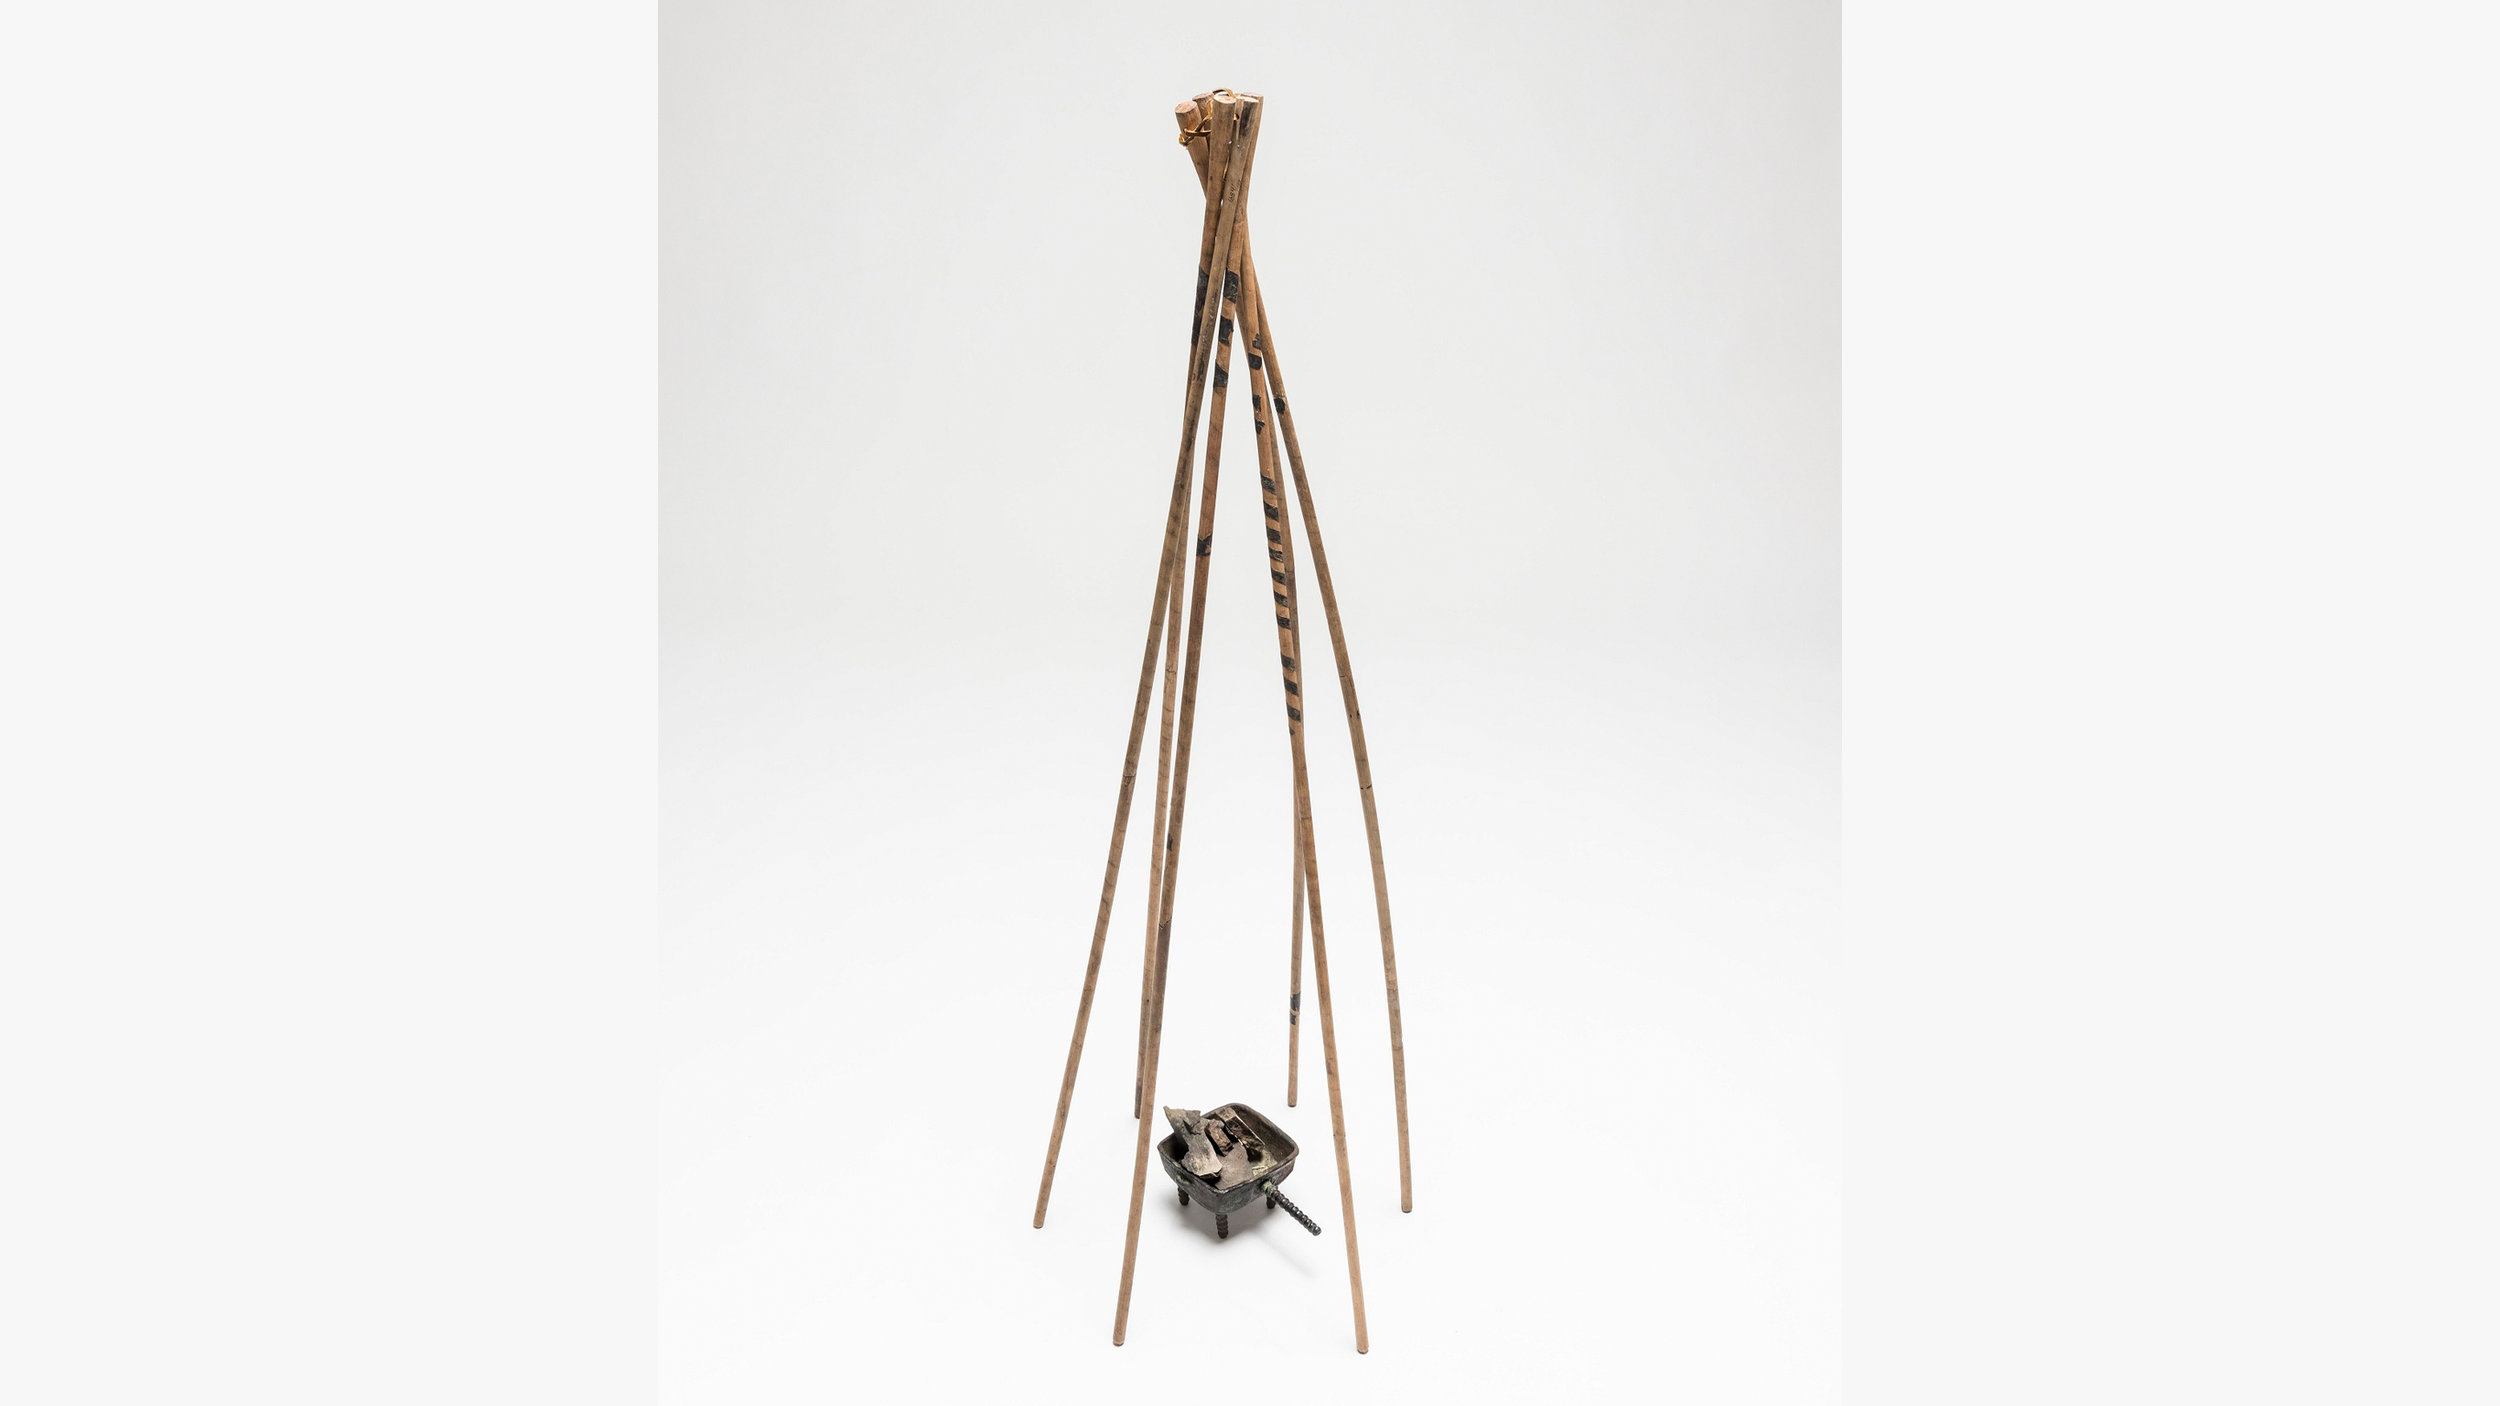 Let's set up a little felt teepee and have some herb-sponsored fun, shall we? - The six sticks of a smoking tent frame and a brazier, Pazyryk 2, late 4th-early 3rd century BCE. From the State Hermitage Museum, St Petersburg, courtesy of the British Museum.